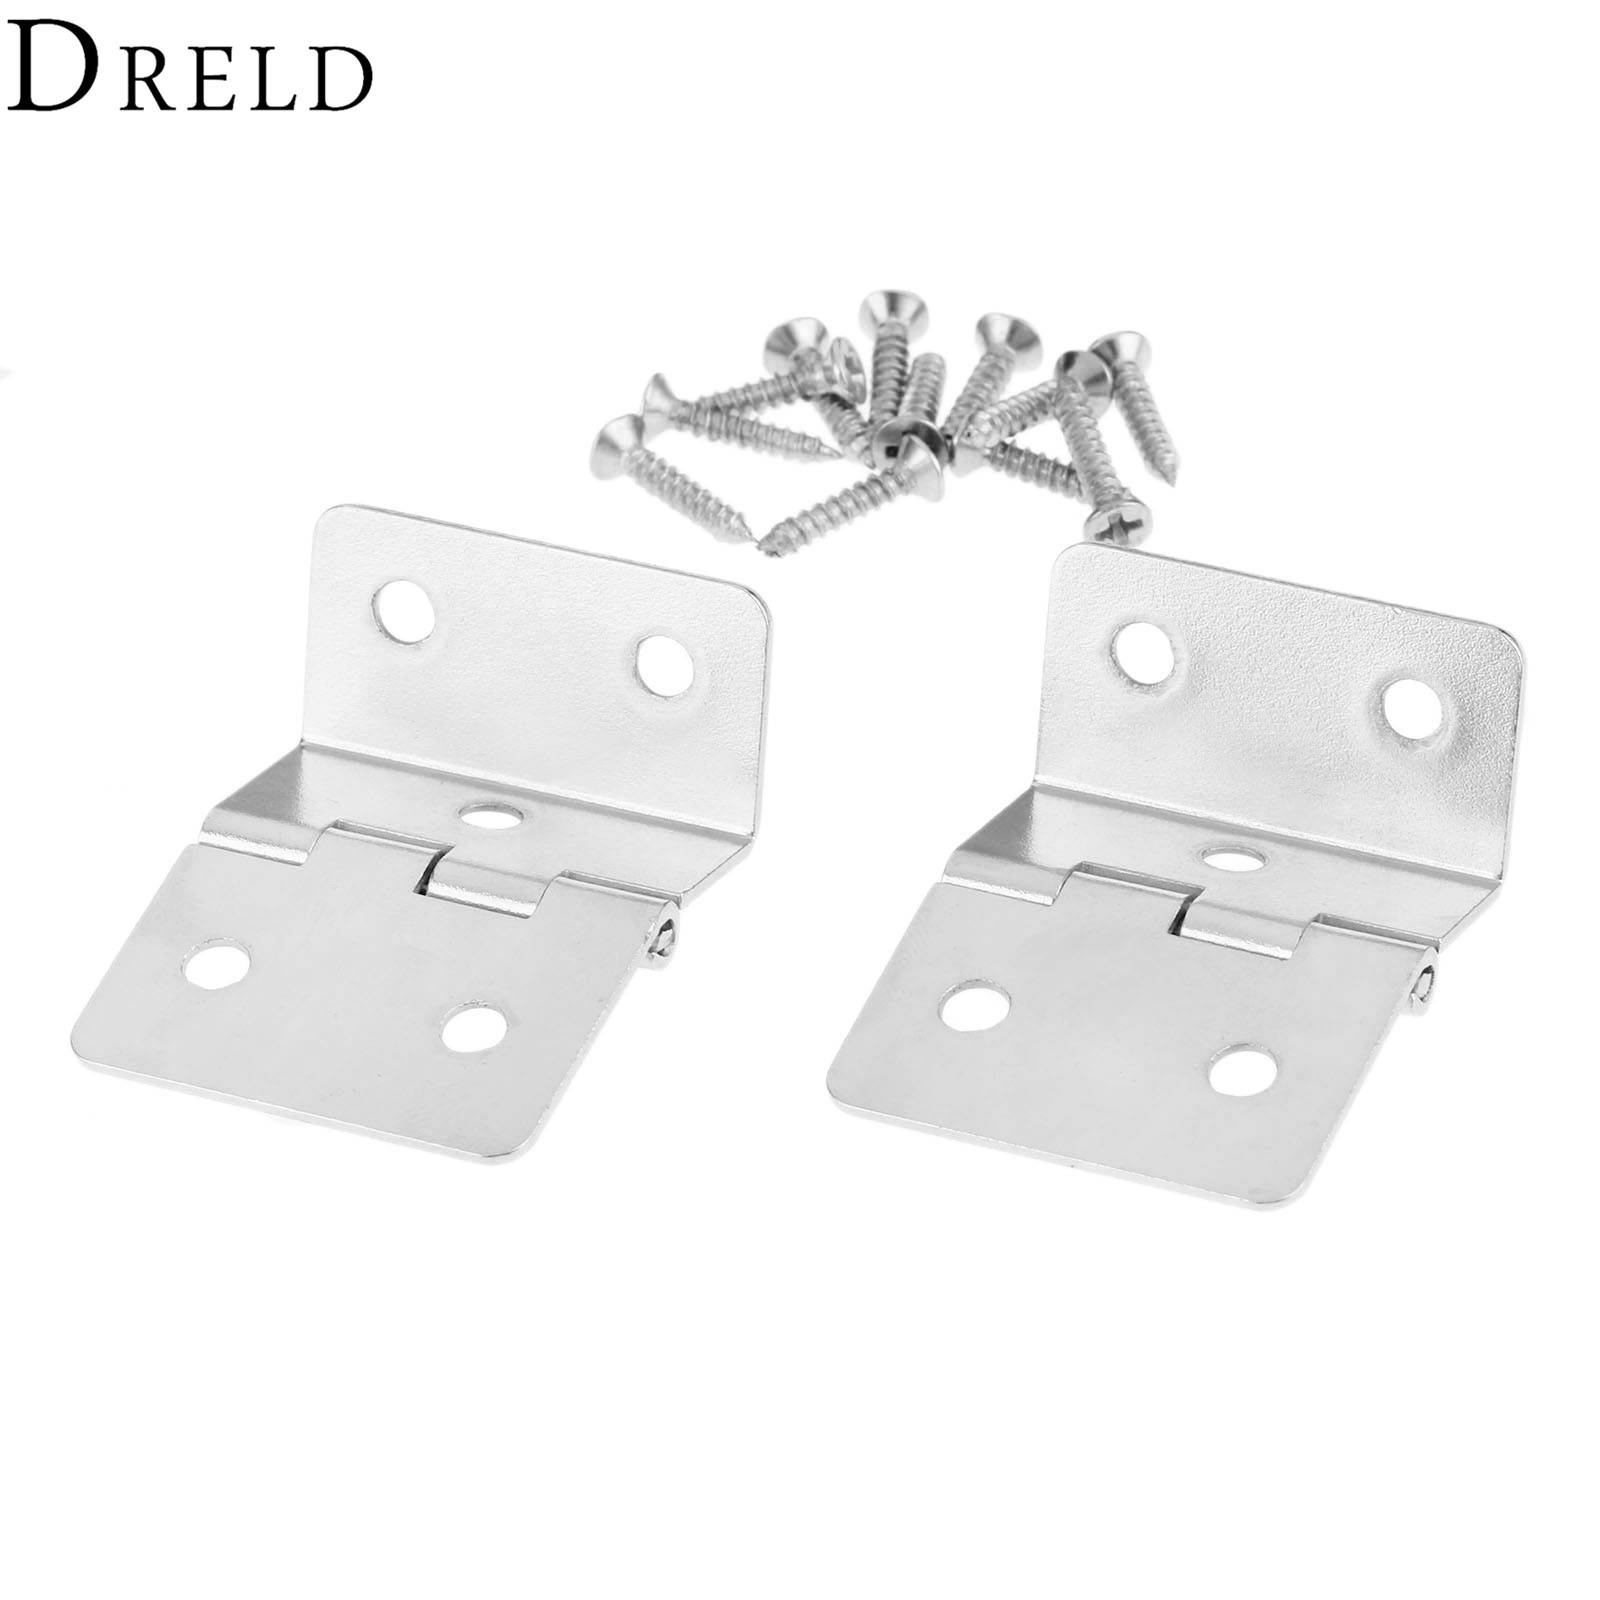 DRELD 2Pcs Kitchen Cabinet Door Folded Hinges Furniture Accessories 5 Holes Drawer Hinges for Jewelry Boxes Furniture Fittings 2pcs set stainless steel 90 degree self closing cabinet closet door hinges home roomfurniture hardware accessories supply